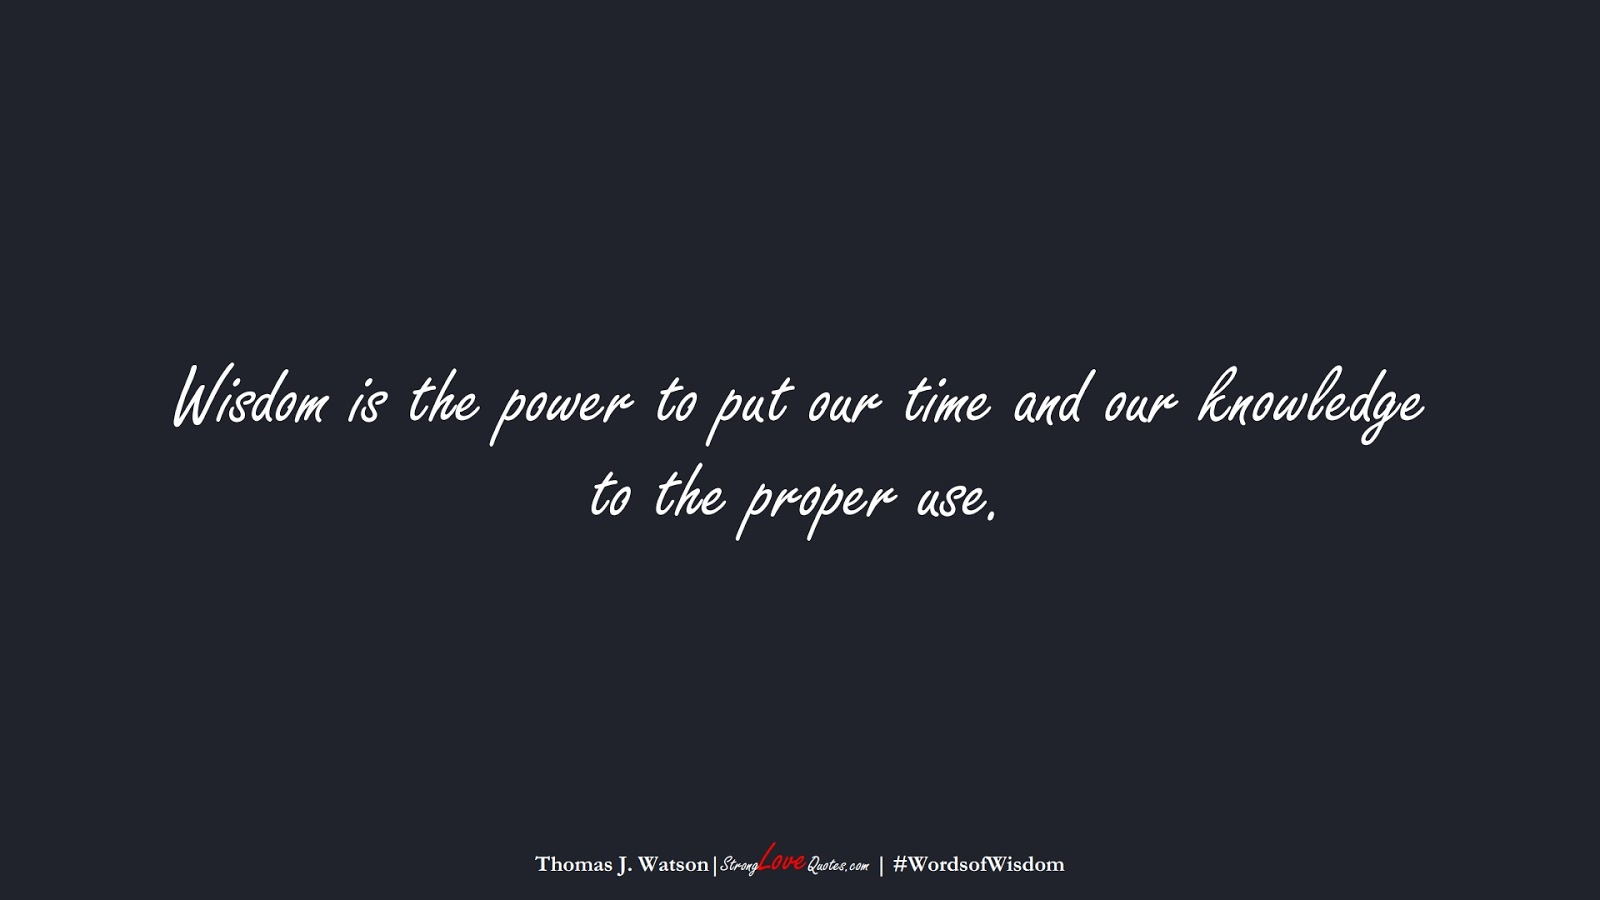 Wisdom is the power to put our time and our knowledge to the proper use. (Thomas J. Watson);  #WordsofWisdom